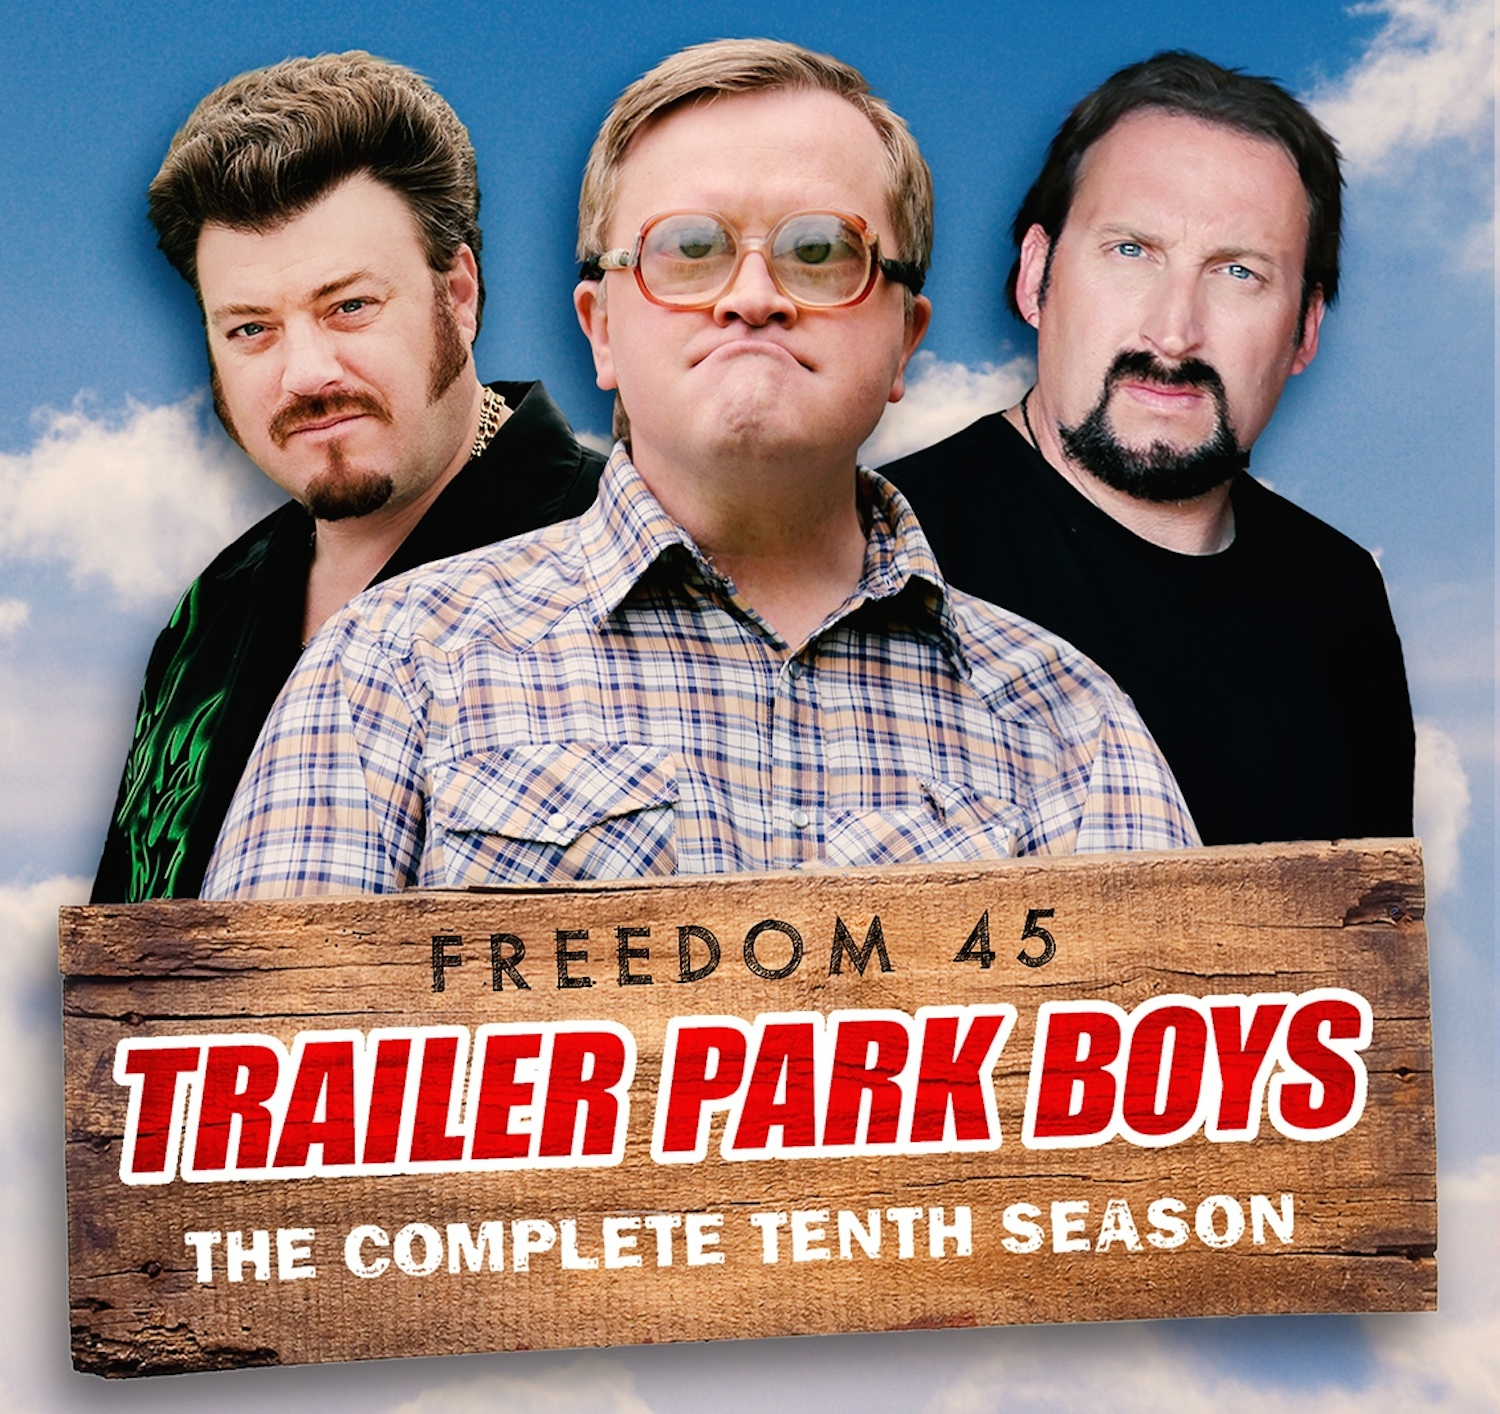 Promotional image for Trailer Park Boys Freedom 45 The Complete Tenth Season